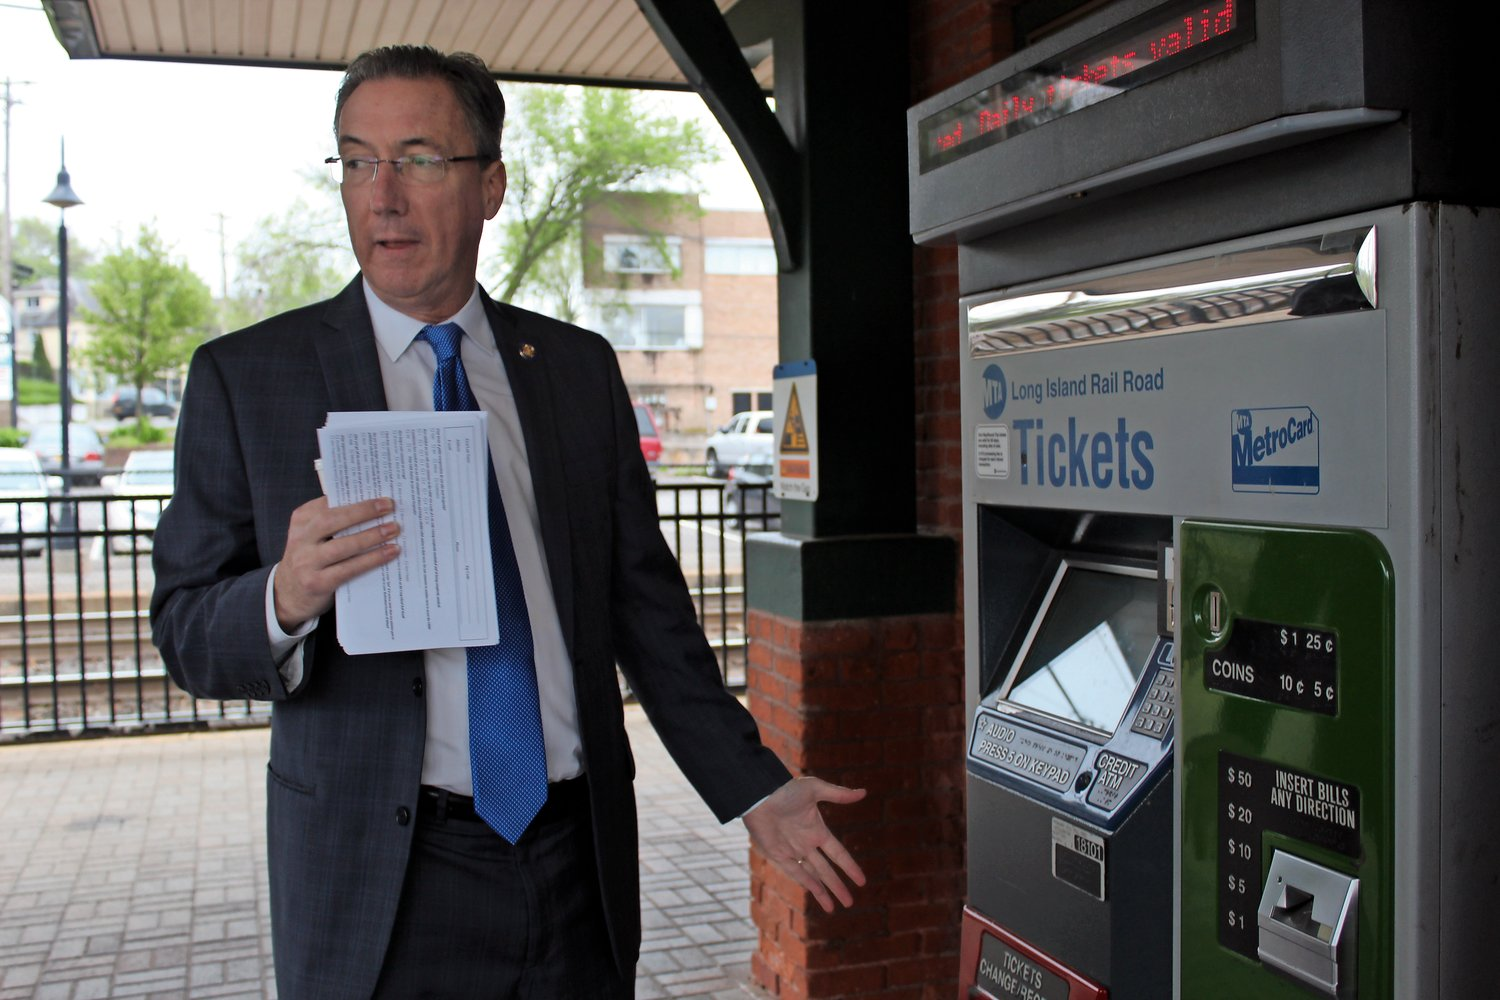 State Senator Jim Gaughran bought a peak ticket from the LIRR ticket terminal at the Glen Street station in Glen Cove.